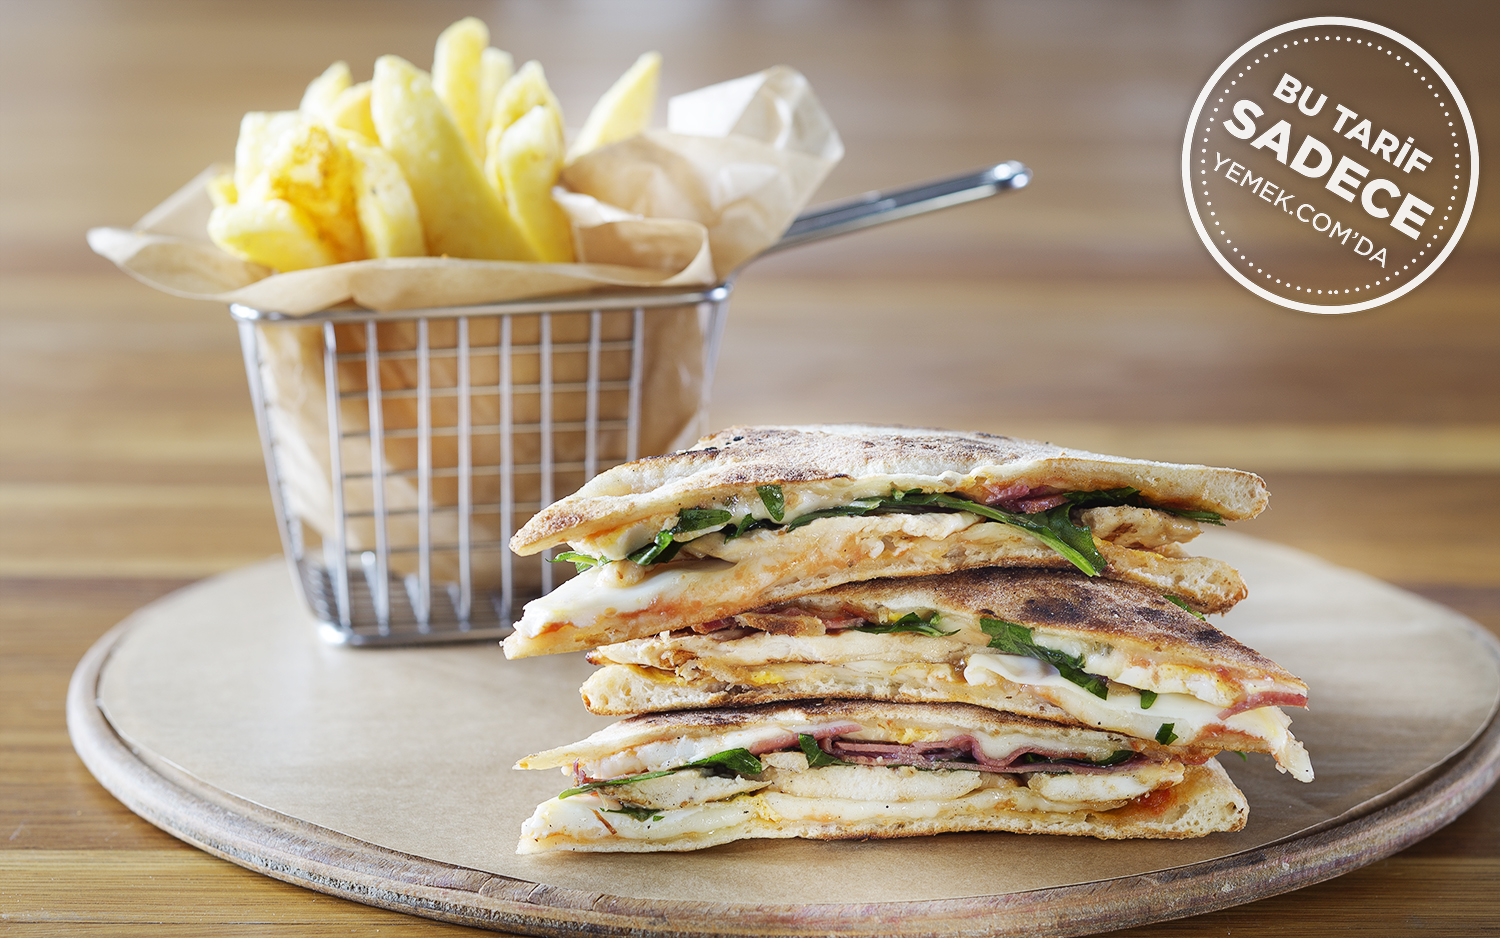 Kitchenette Pizza Club Sandwich Tarifi